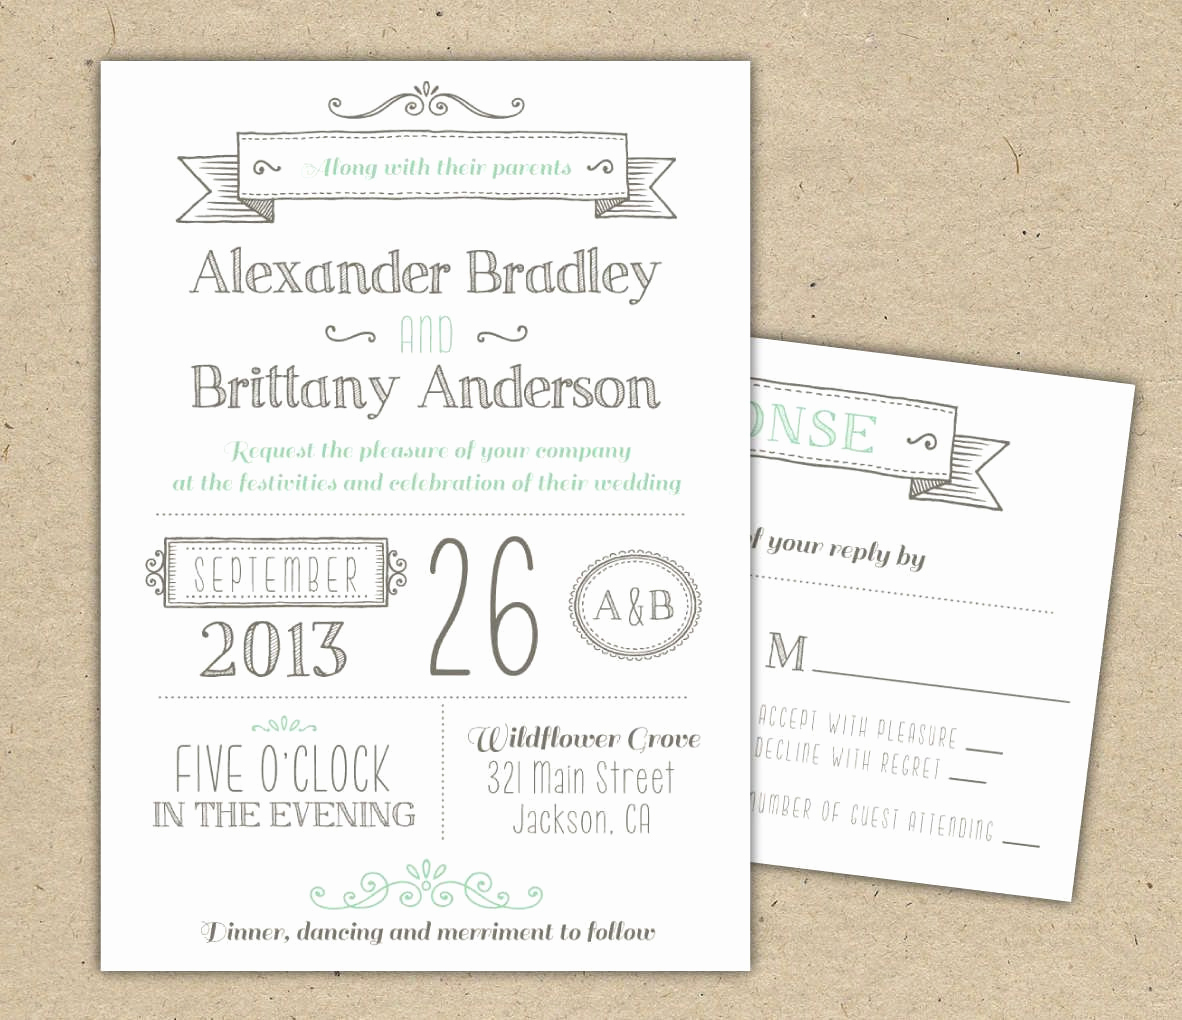 Free Wedding Invitation Printable Templates Fresh Wedding Invitations Template Free Download